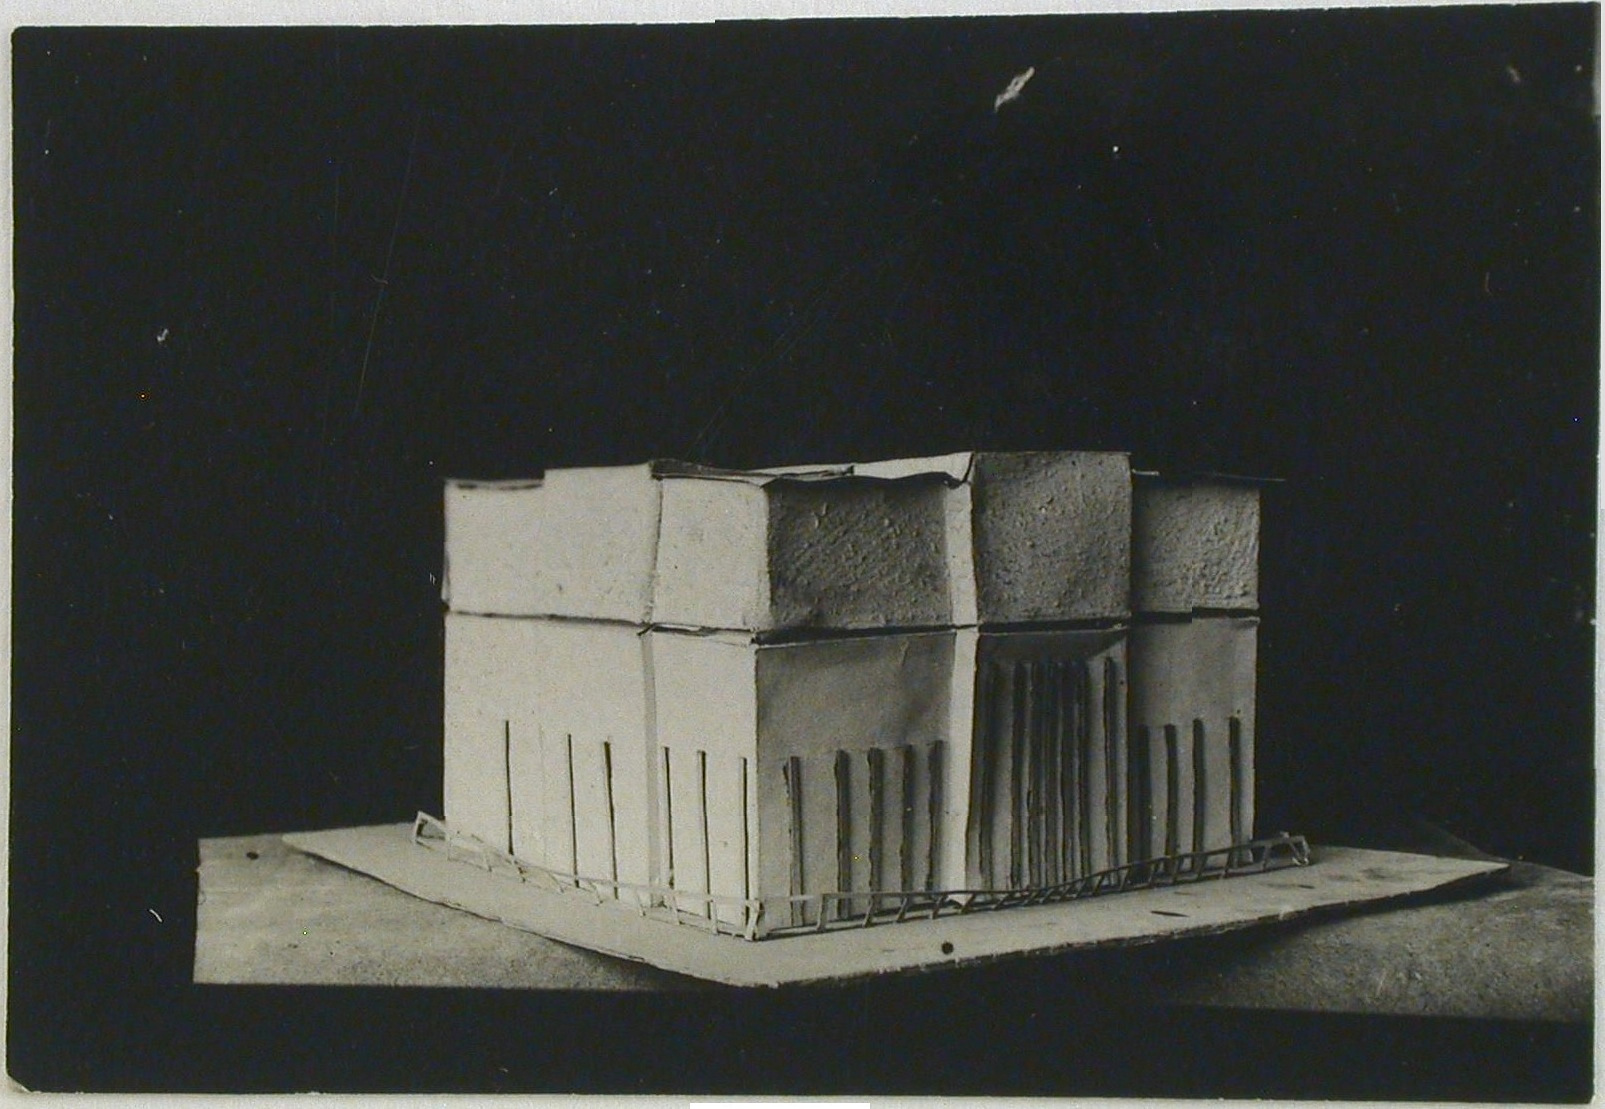 Photograph of a student model on the topic %22Finding the Form of Blunt Massive Volume (Parallelepiped, Cylinder, Complex Configuration)%22 for the %22Space%22 course at the Vkhutemas (Higher State Artistic Technical Studios), Moscow between 1920-1926j